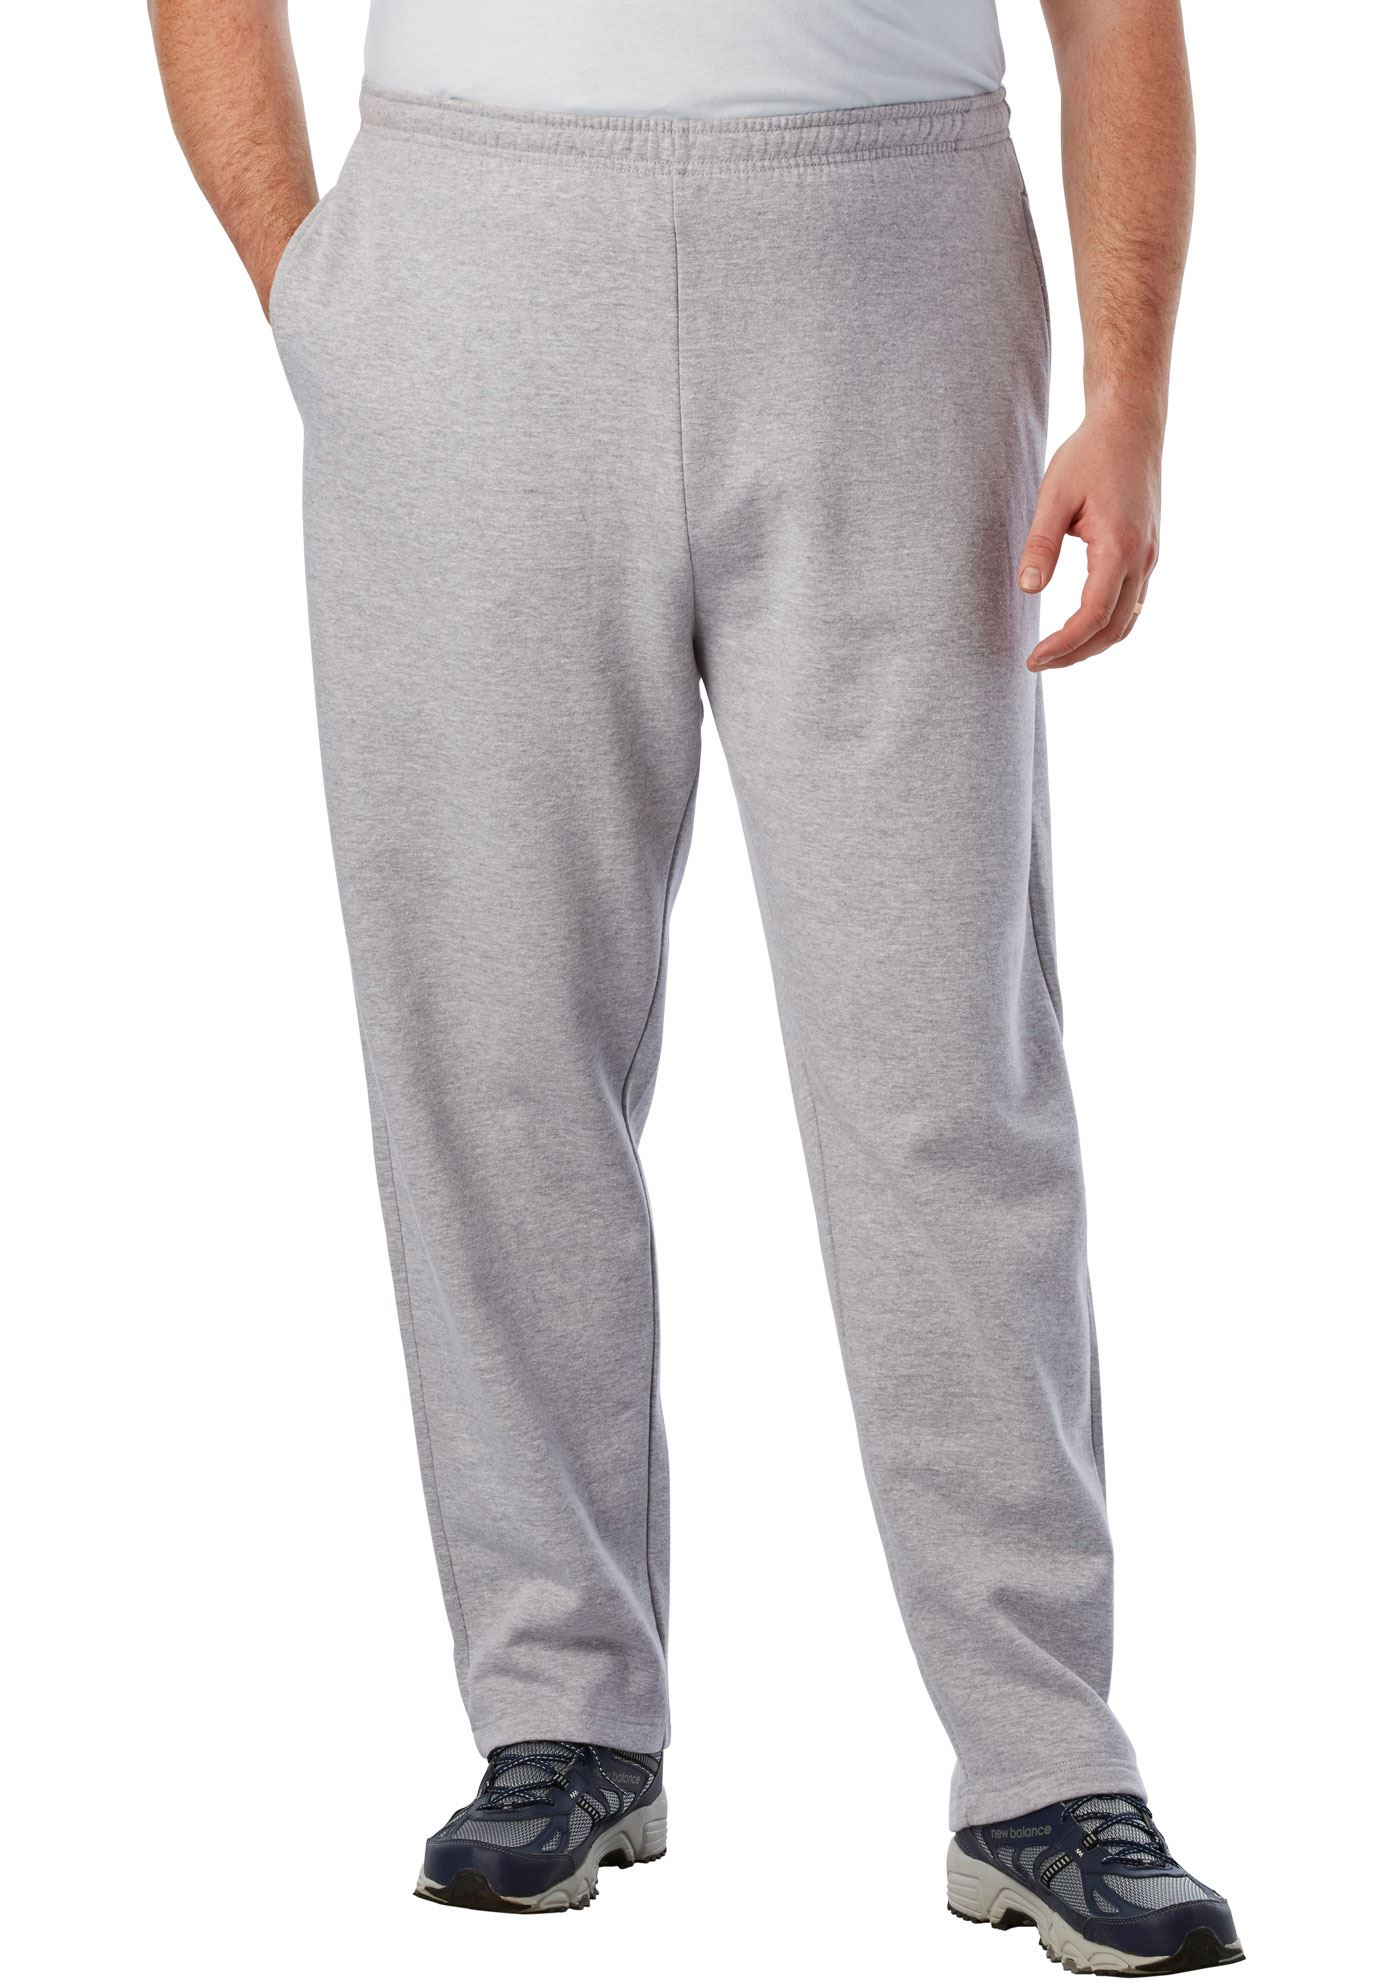 Kingsize Men's Big & Tall Fleece Open-bottom Pants